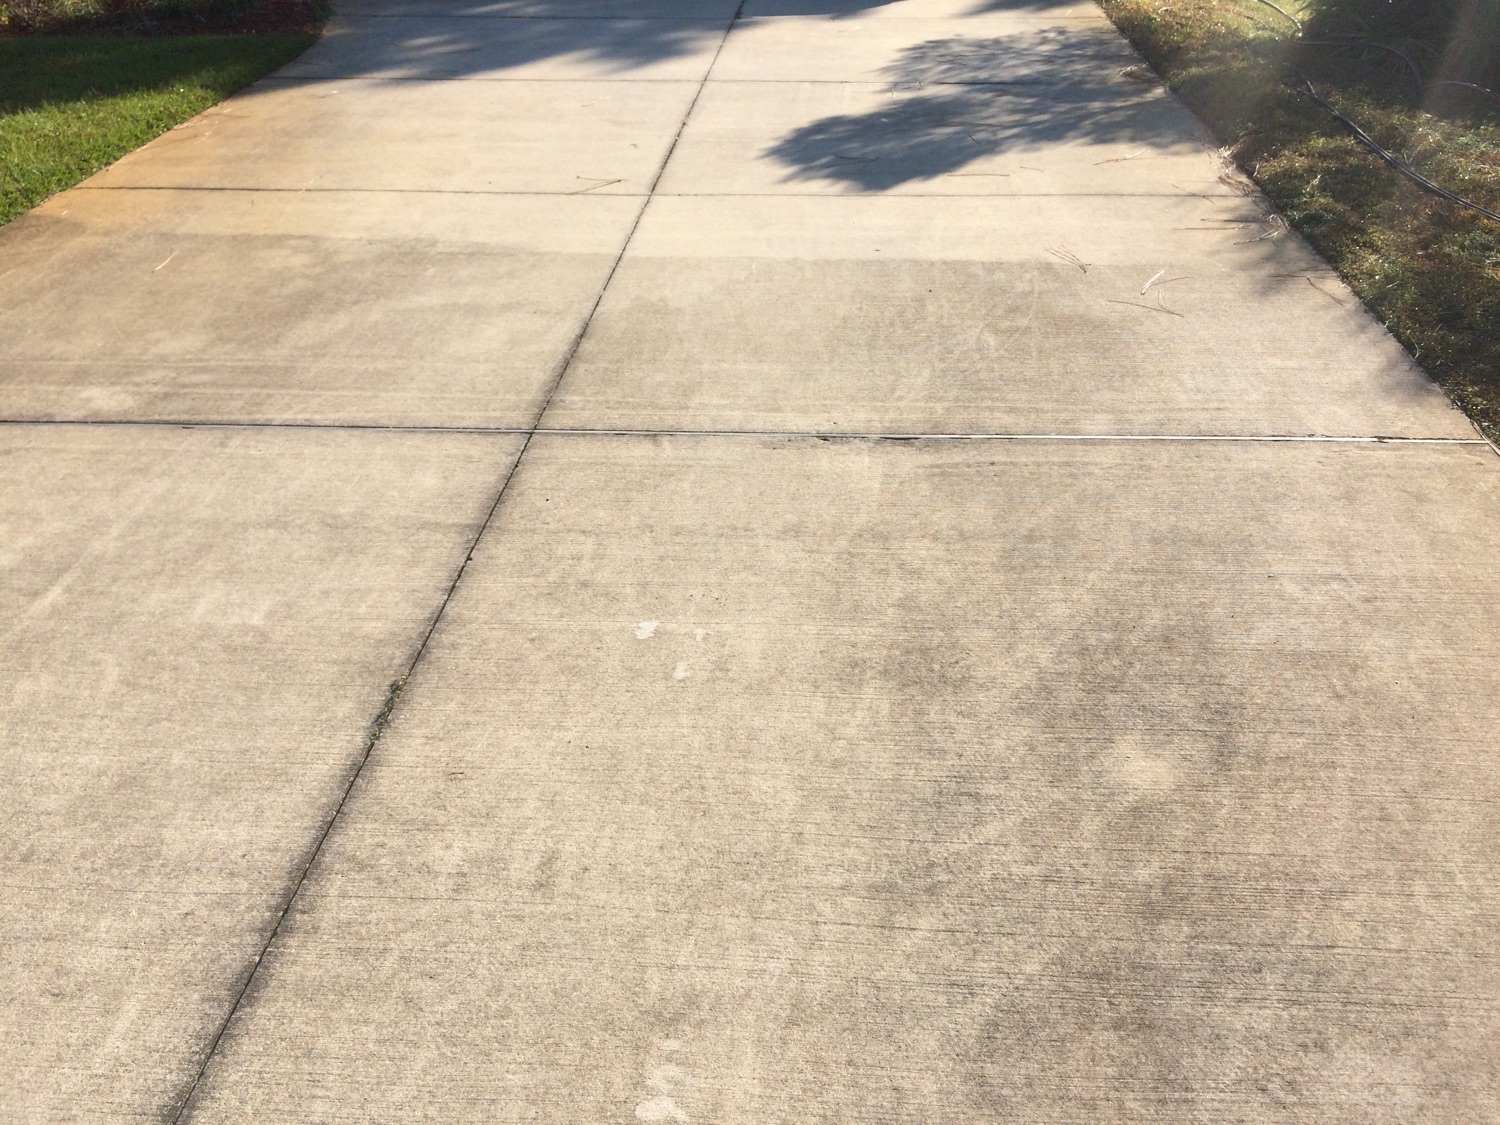 Driveway Cleaning by the owner